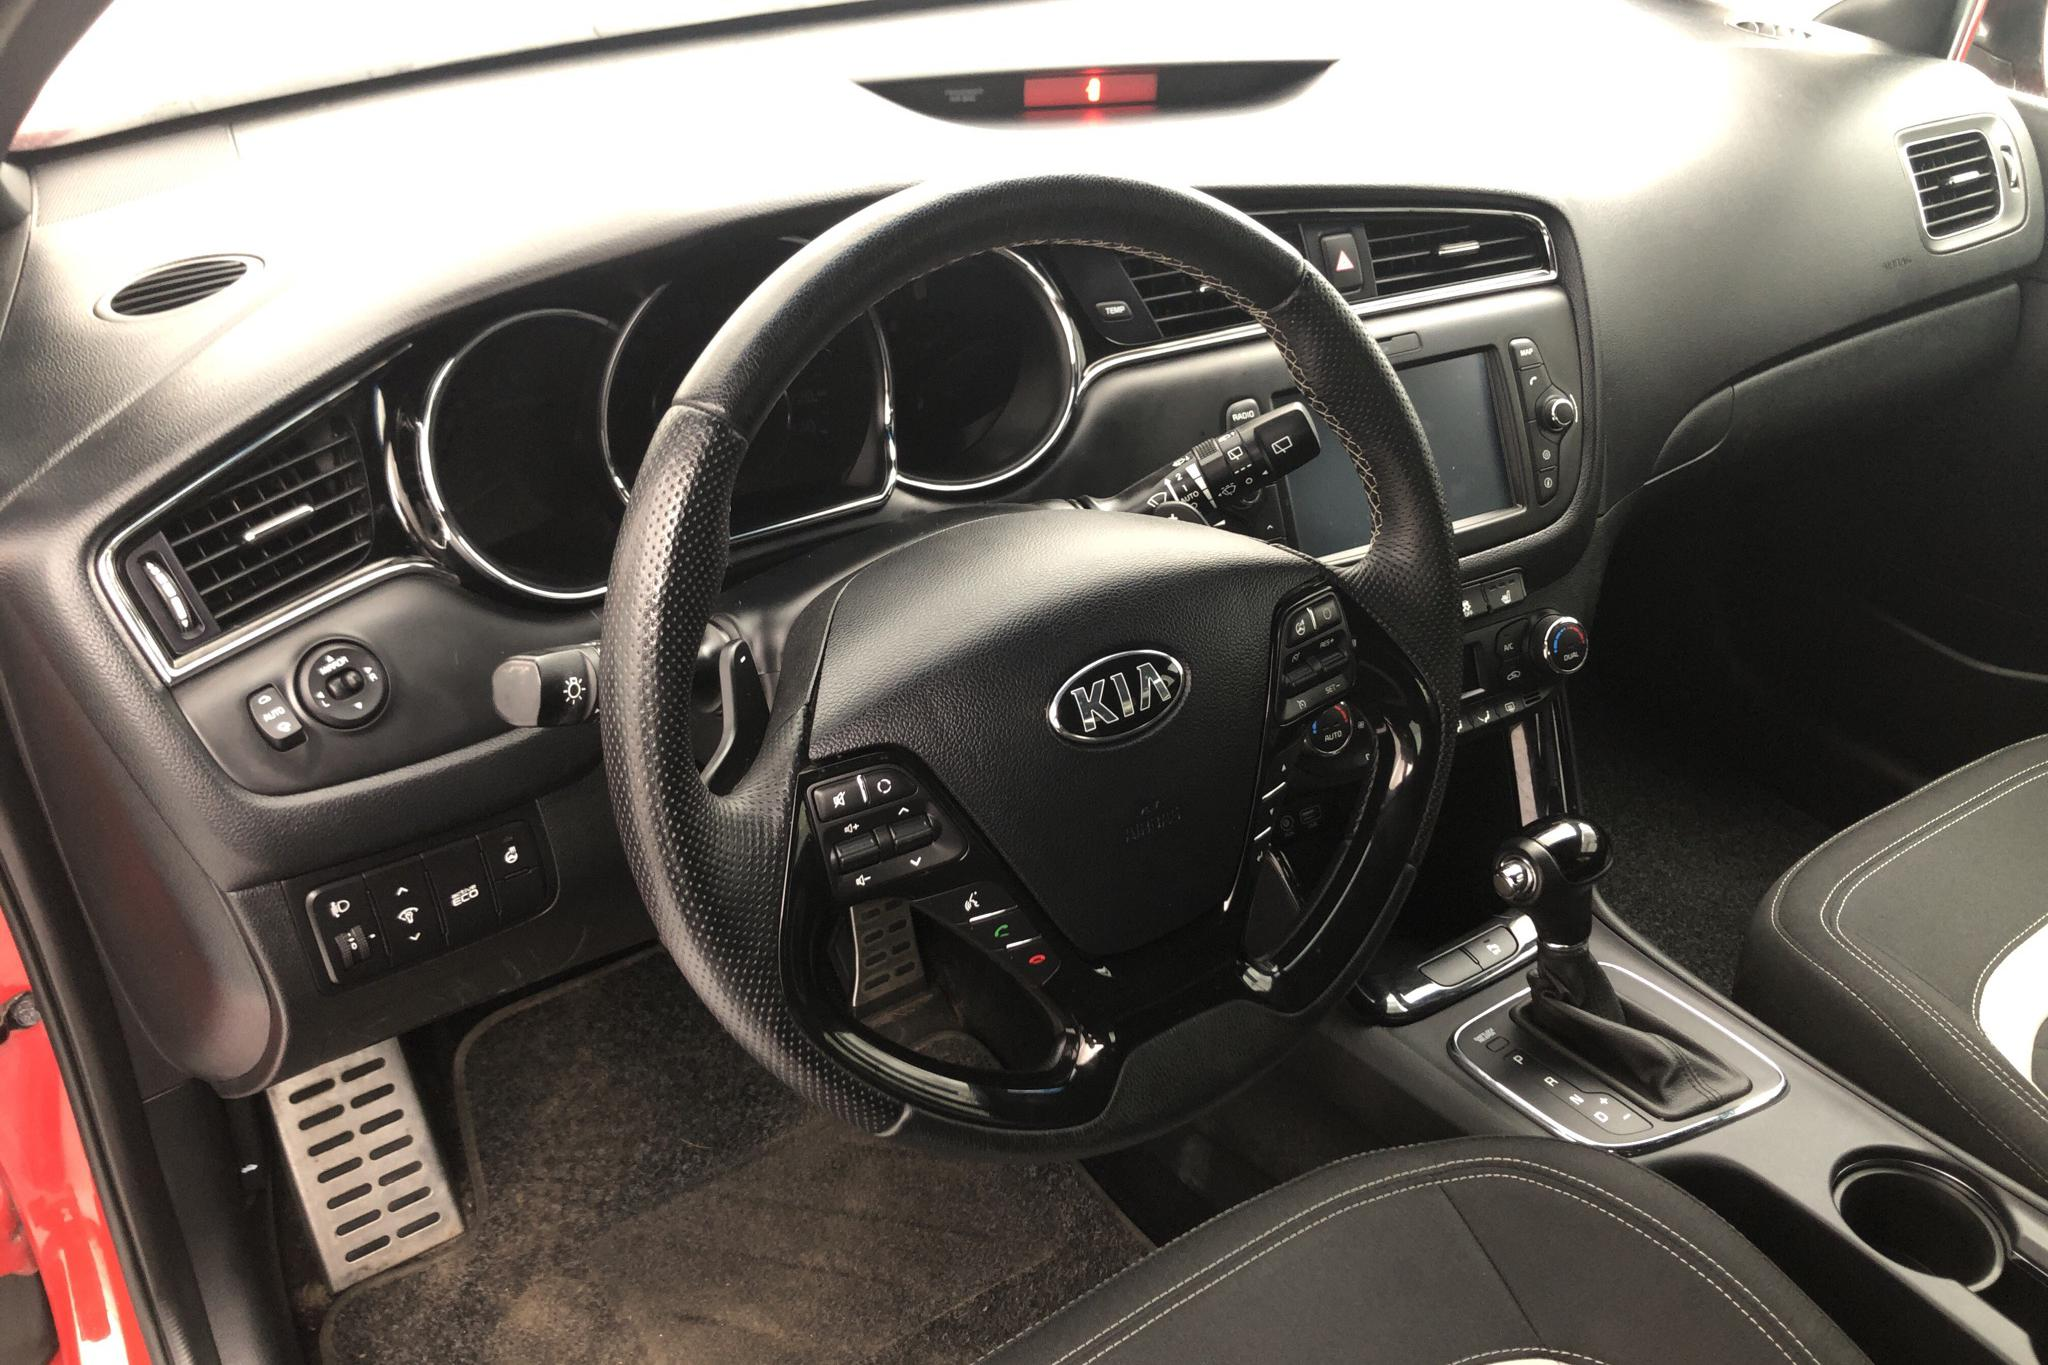 KIA Cee'd 1.6 SW (135hk) - 47 470 km - Automatic - red - 2018